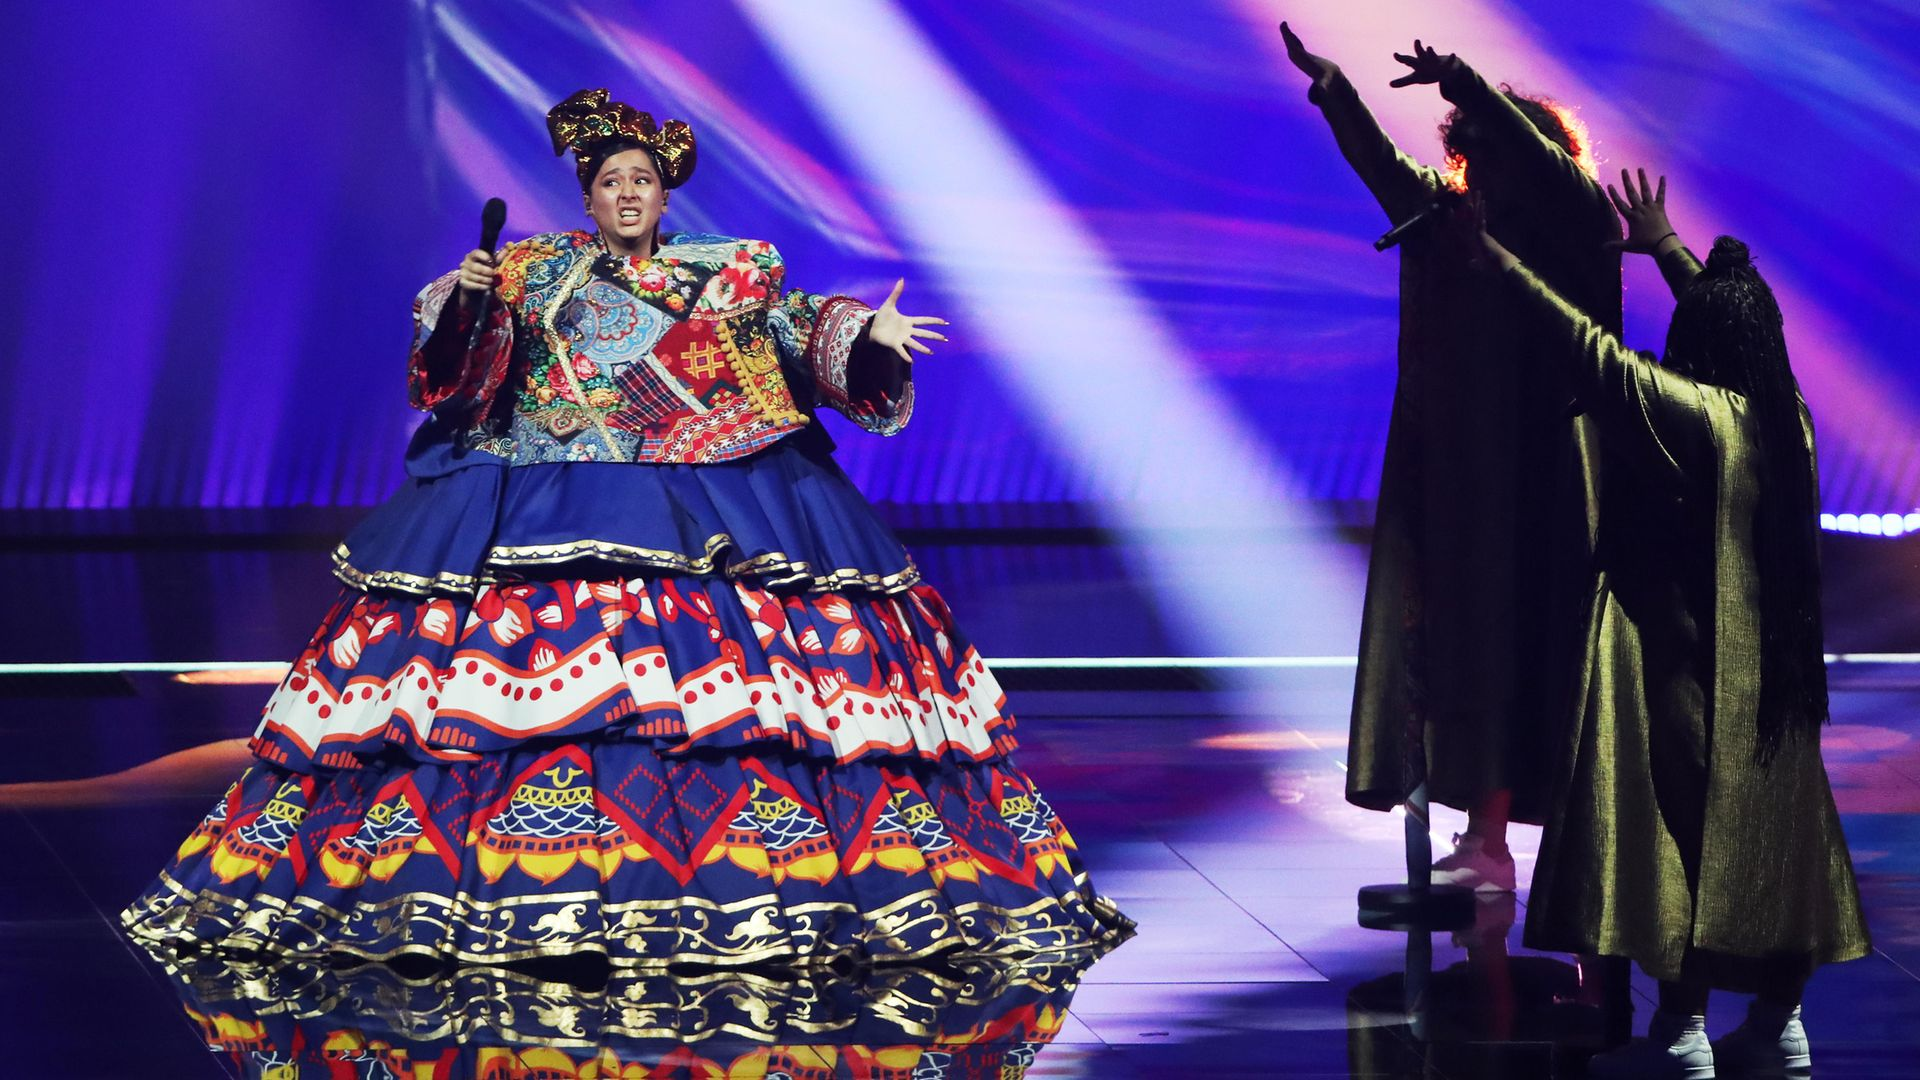 Russian entry Manizha performs during a Eurovision dress rehearsal at the Rotterdam Ahoy Arena. Vyacheslav Prokofyev/TASS (Photo by Vyacheslav ProkofyevTASS via Getty Images) - Credit: Vyacheslav Prokofyev/TASS